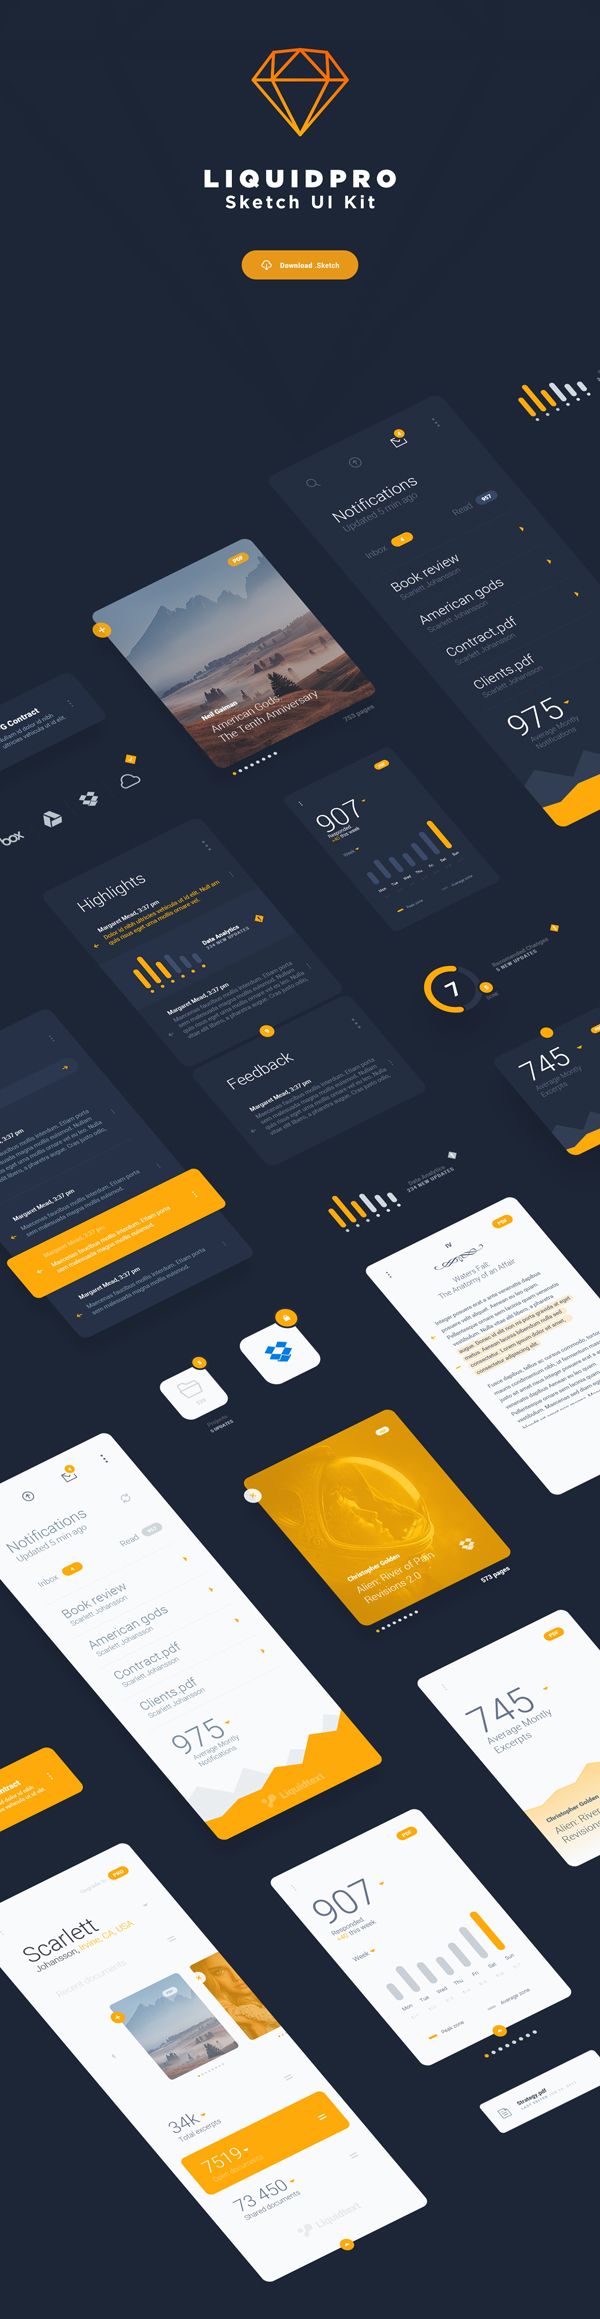 Free Flat Graphics for Designers - 32